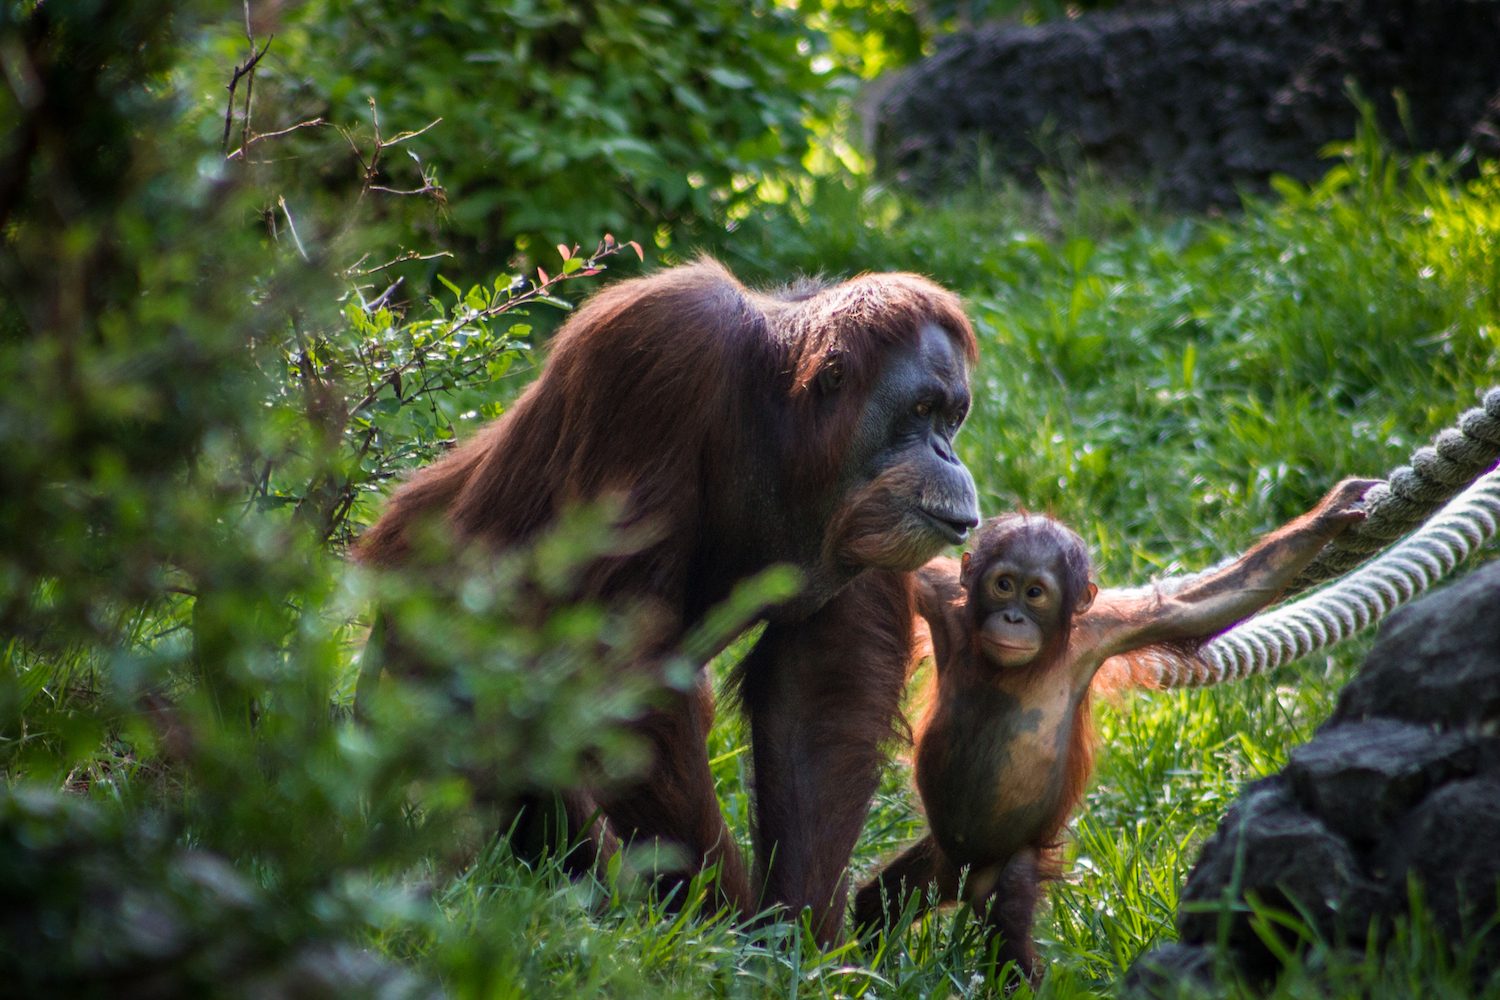 Mother and Young Orangutan, Atlanta Zoo, Canon DSLR